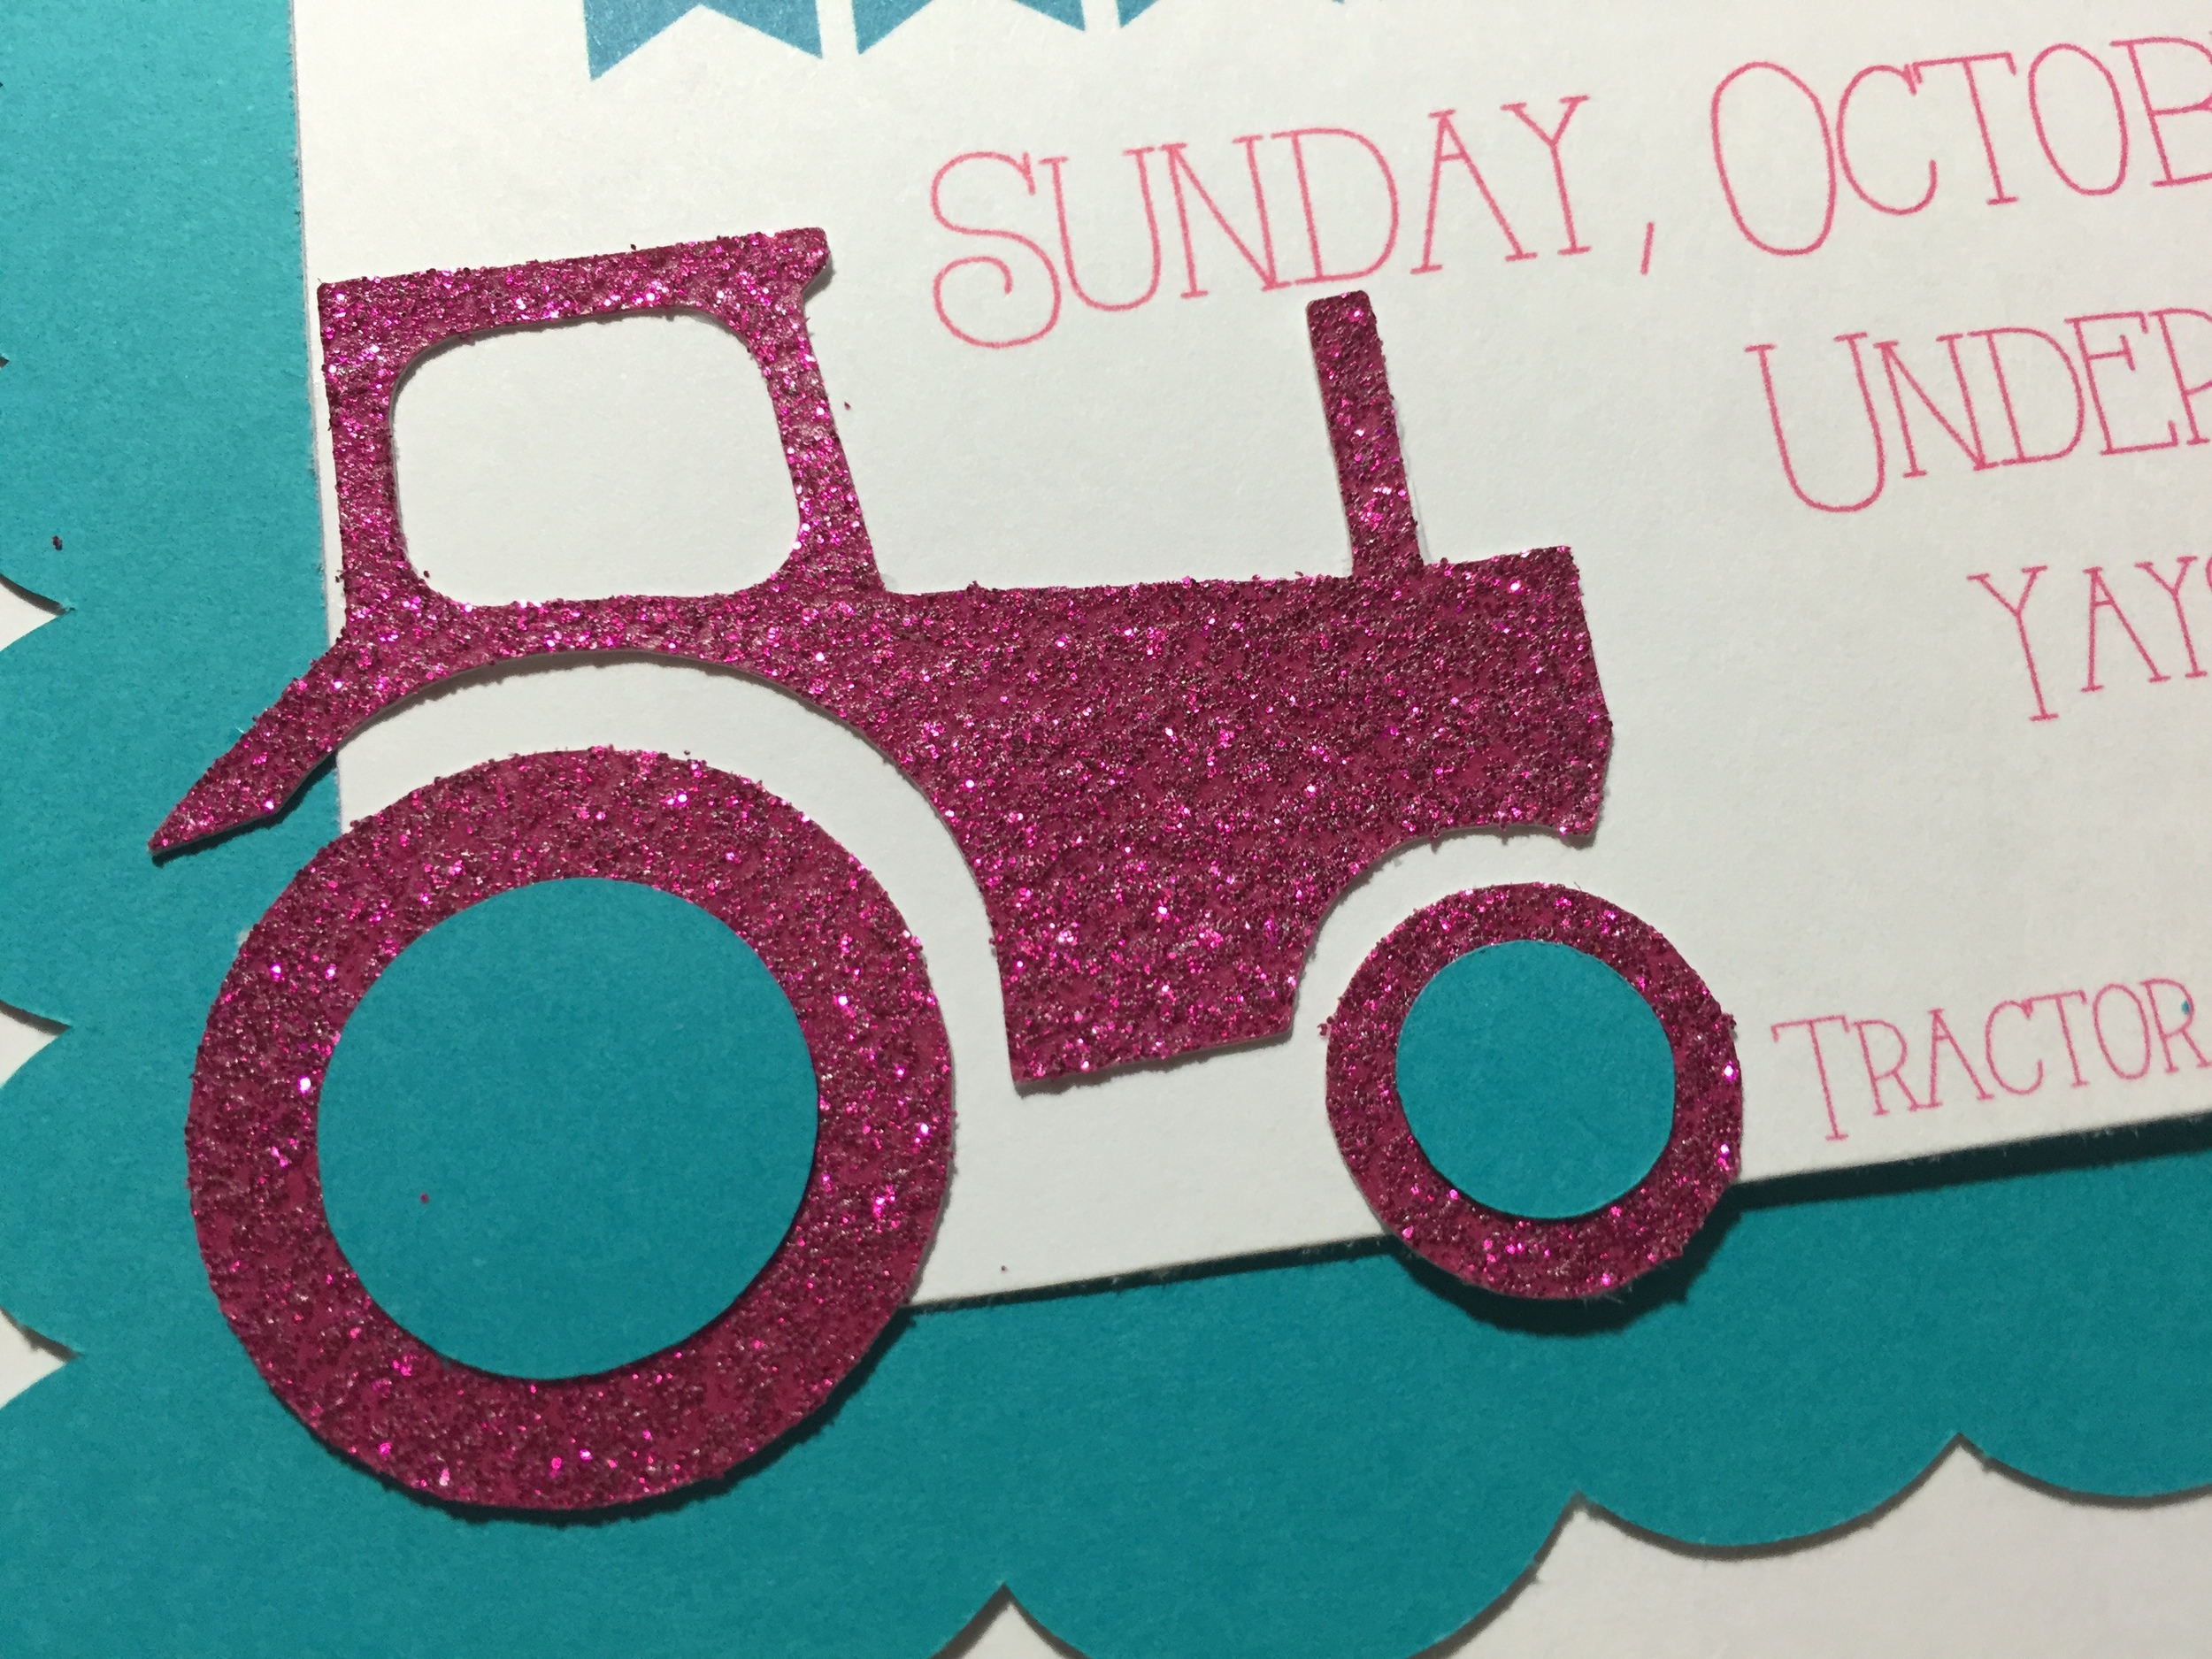 Glitter Tractor Invitation by Down Emery Lane.